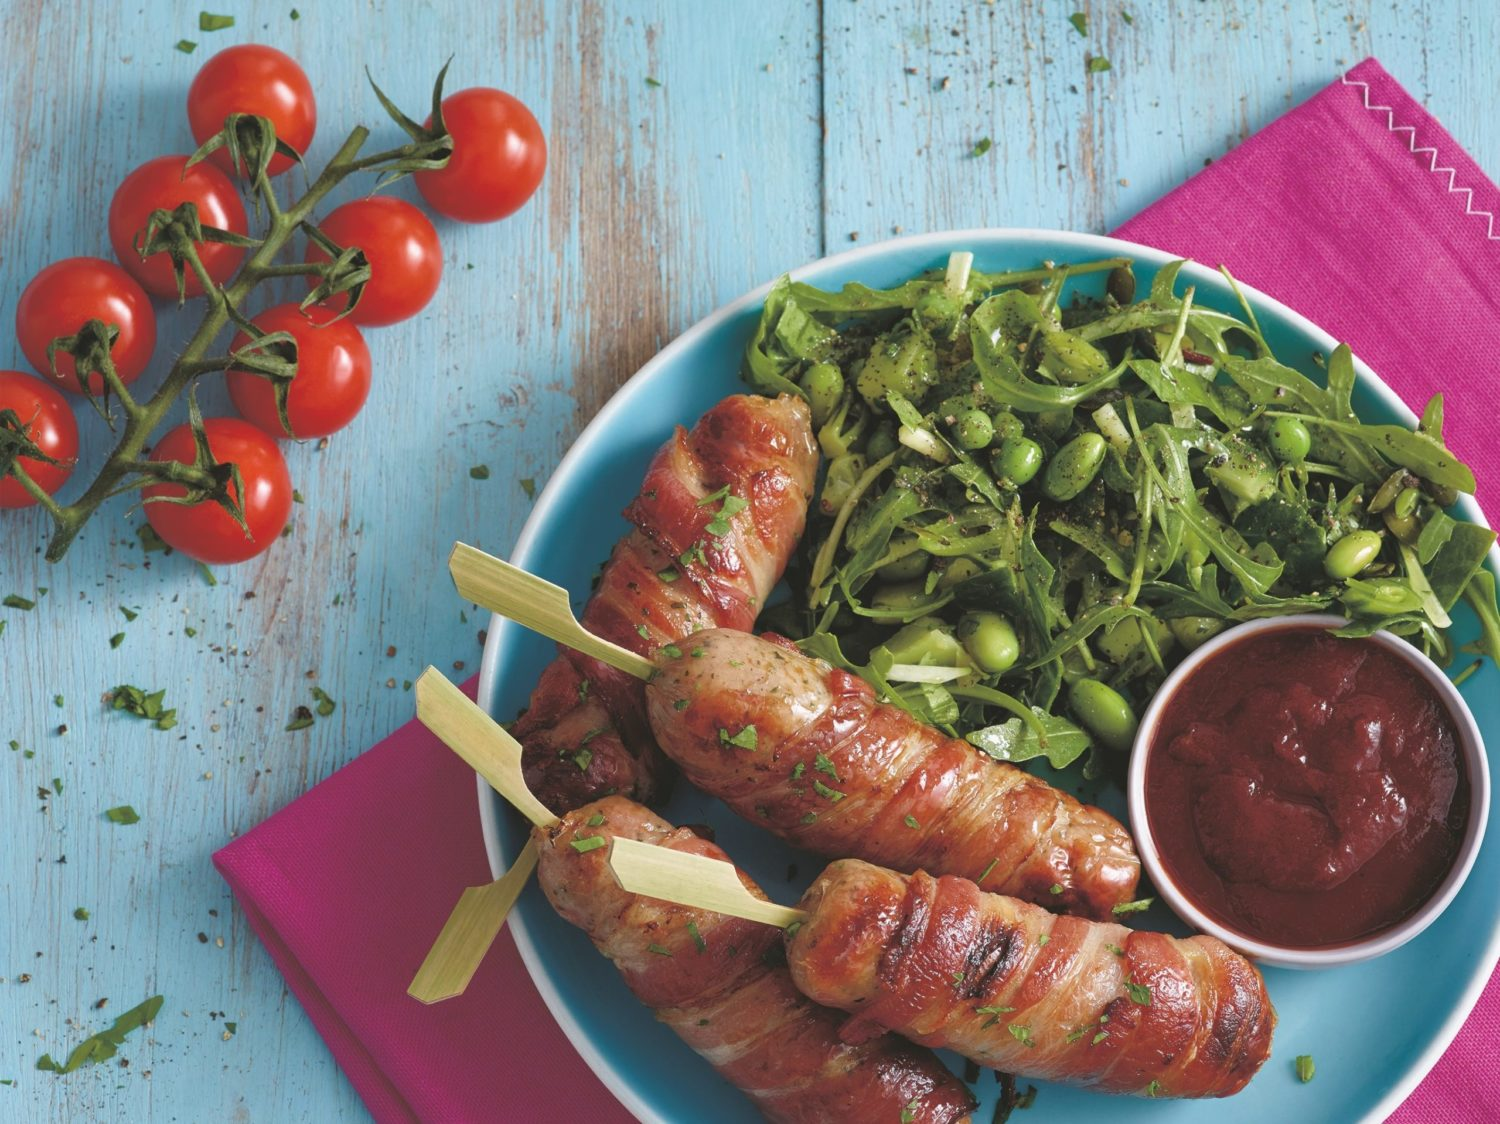 Aldi launches GIANT Pig in Blanket kebabs for barbecue season